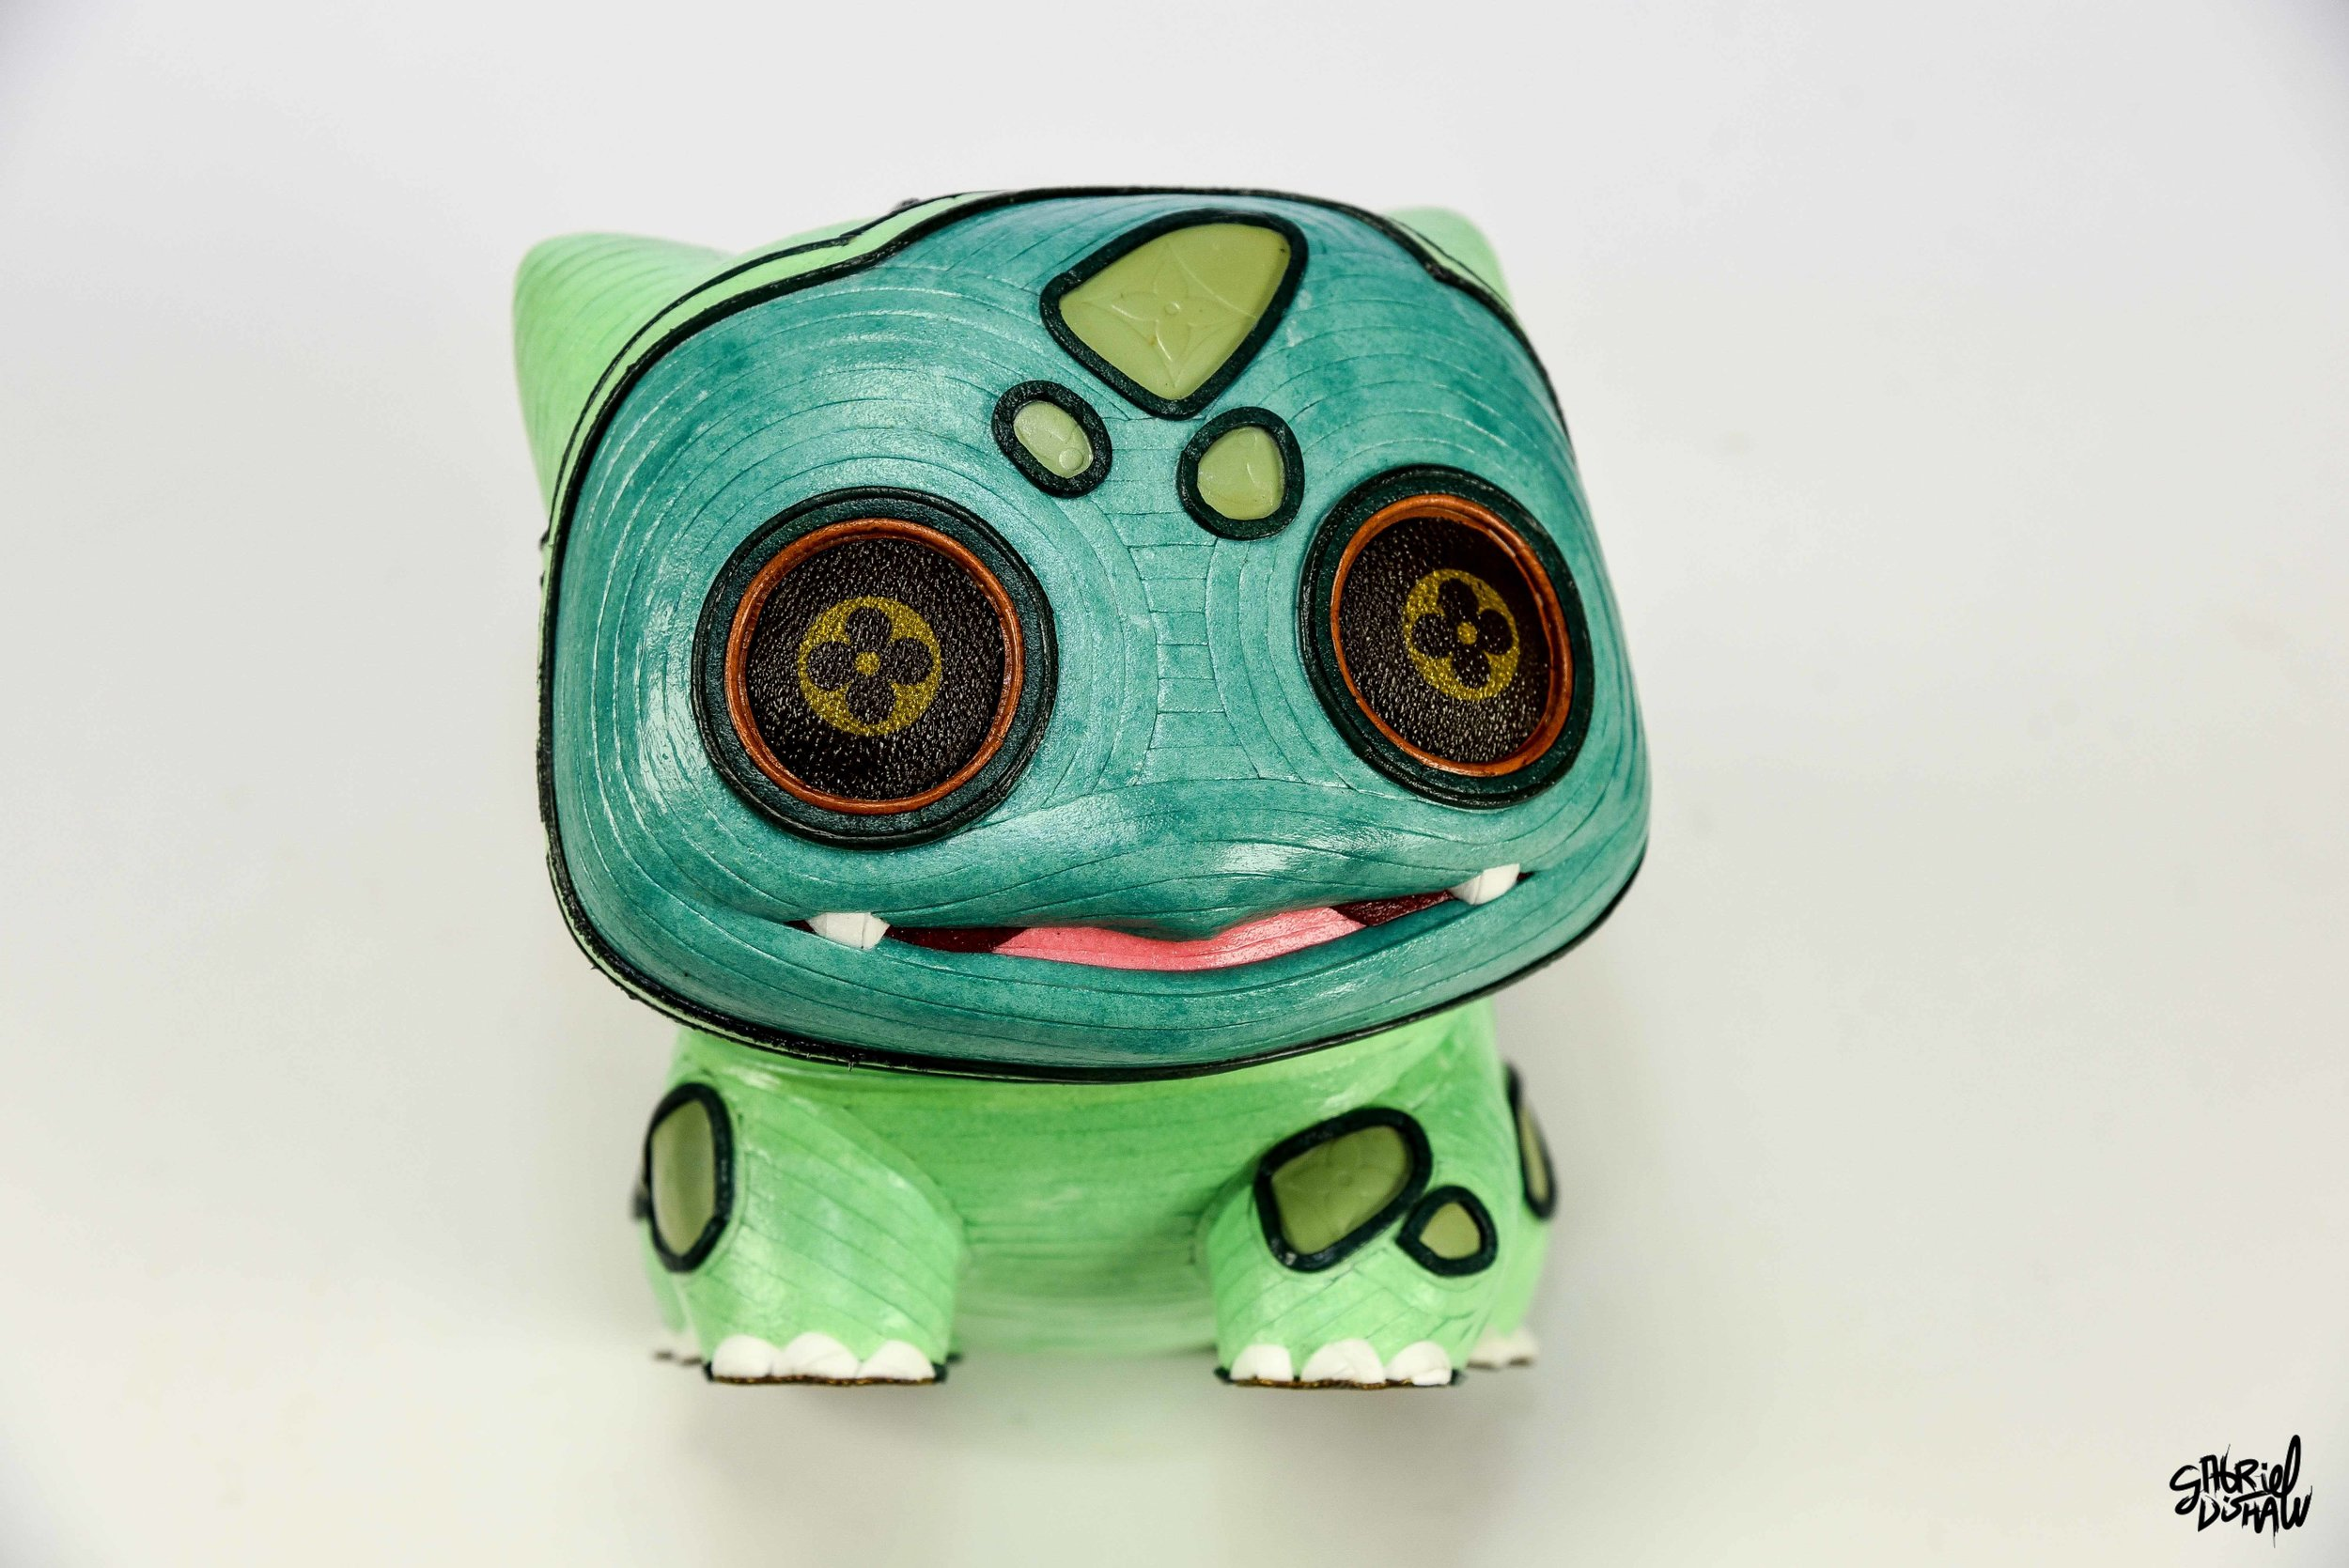 Gabriel Dishaw Bulbasaur LV (106 of 107).jpg